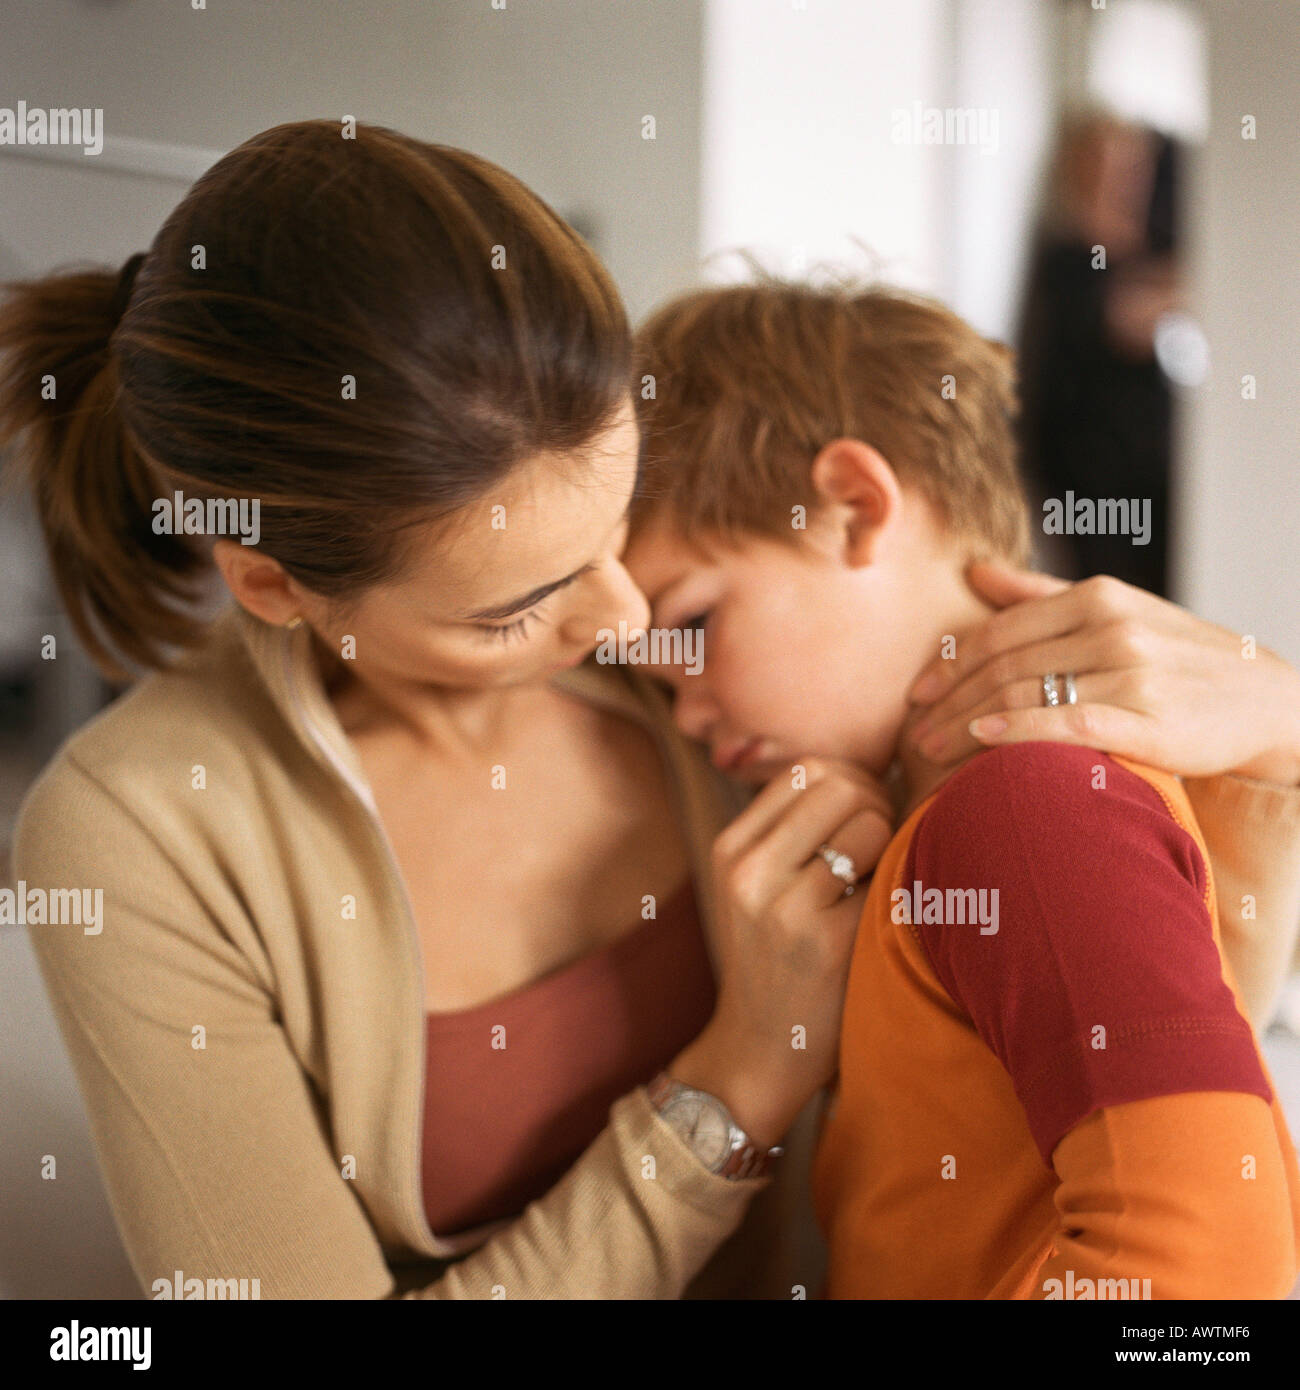 Woman with little boy's head on her shoulder - Stock Image